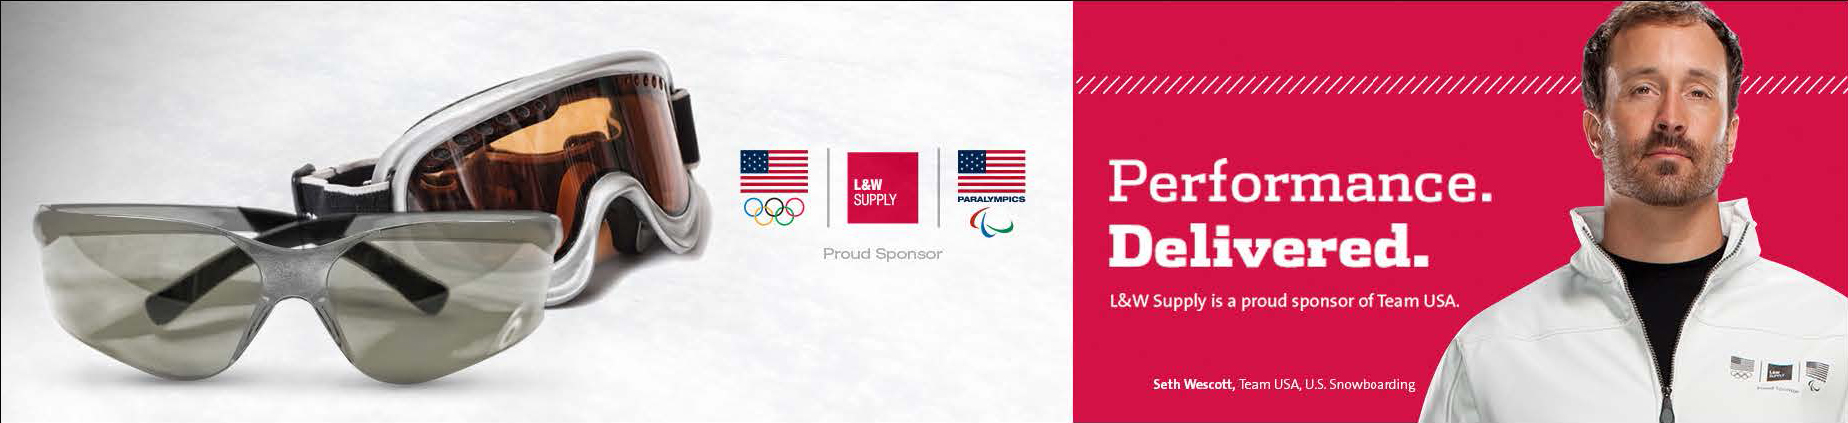 4A-161_OlympicSponsorshipHomepageBanners_Deck_v01_Page_05.jpg